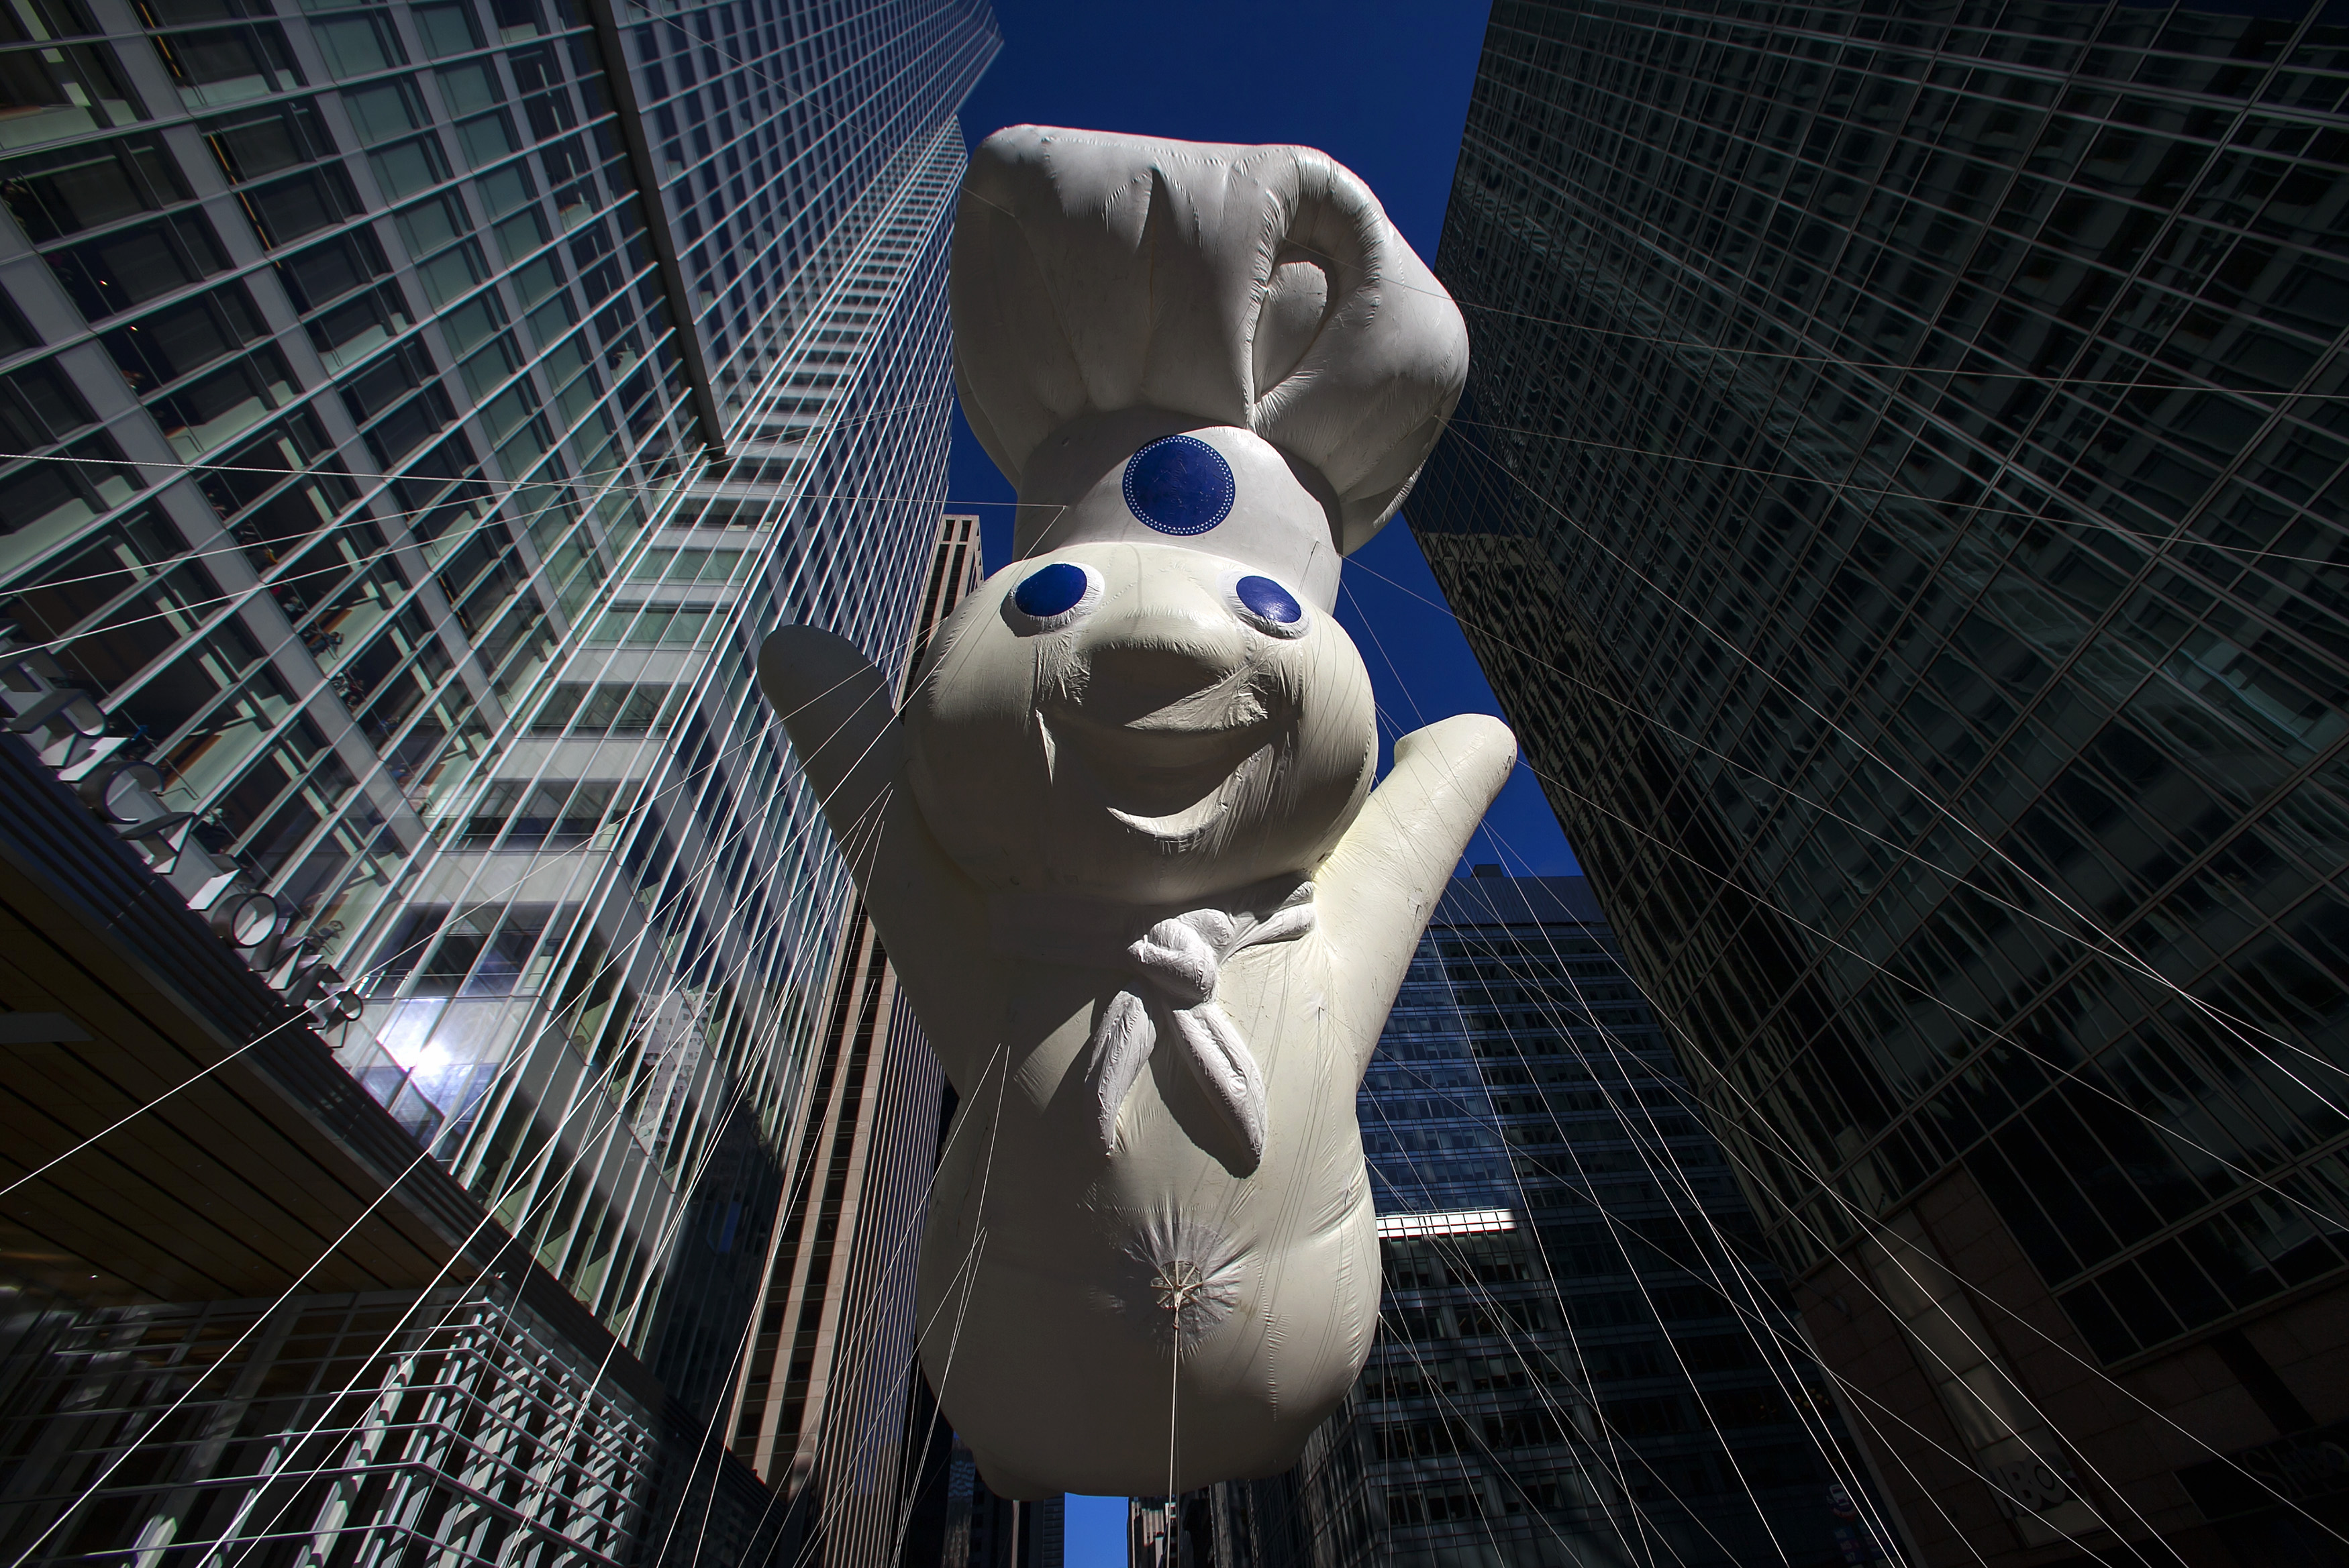 A Pillsbury Doughboy balloon float at the 87th Macy's Thanksgiving Day Parade in New York November 28, 2013